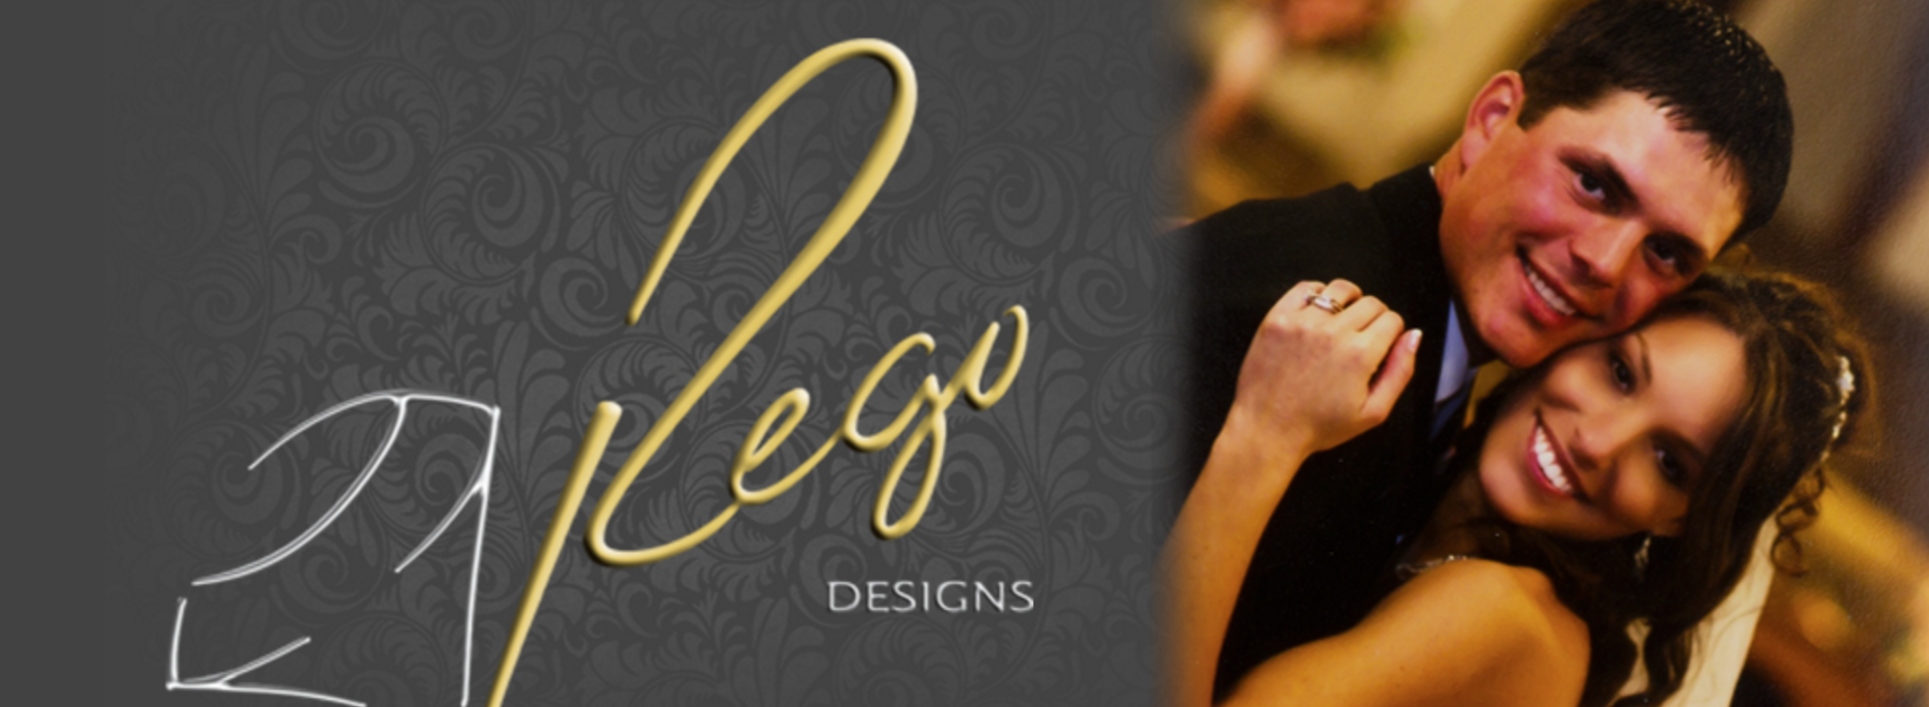 Nelson Jewelry Rego Designs